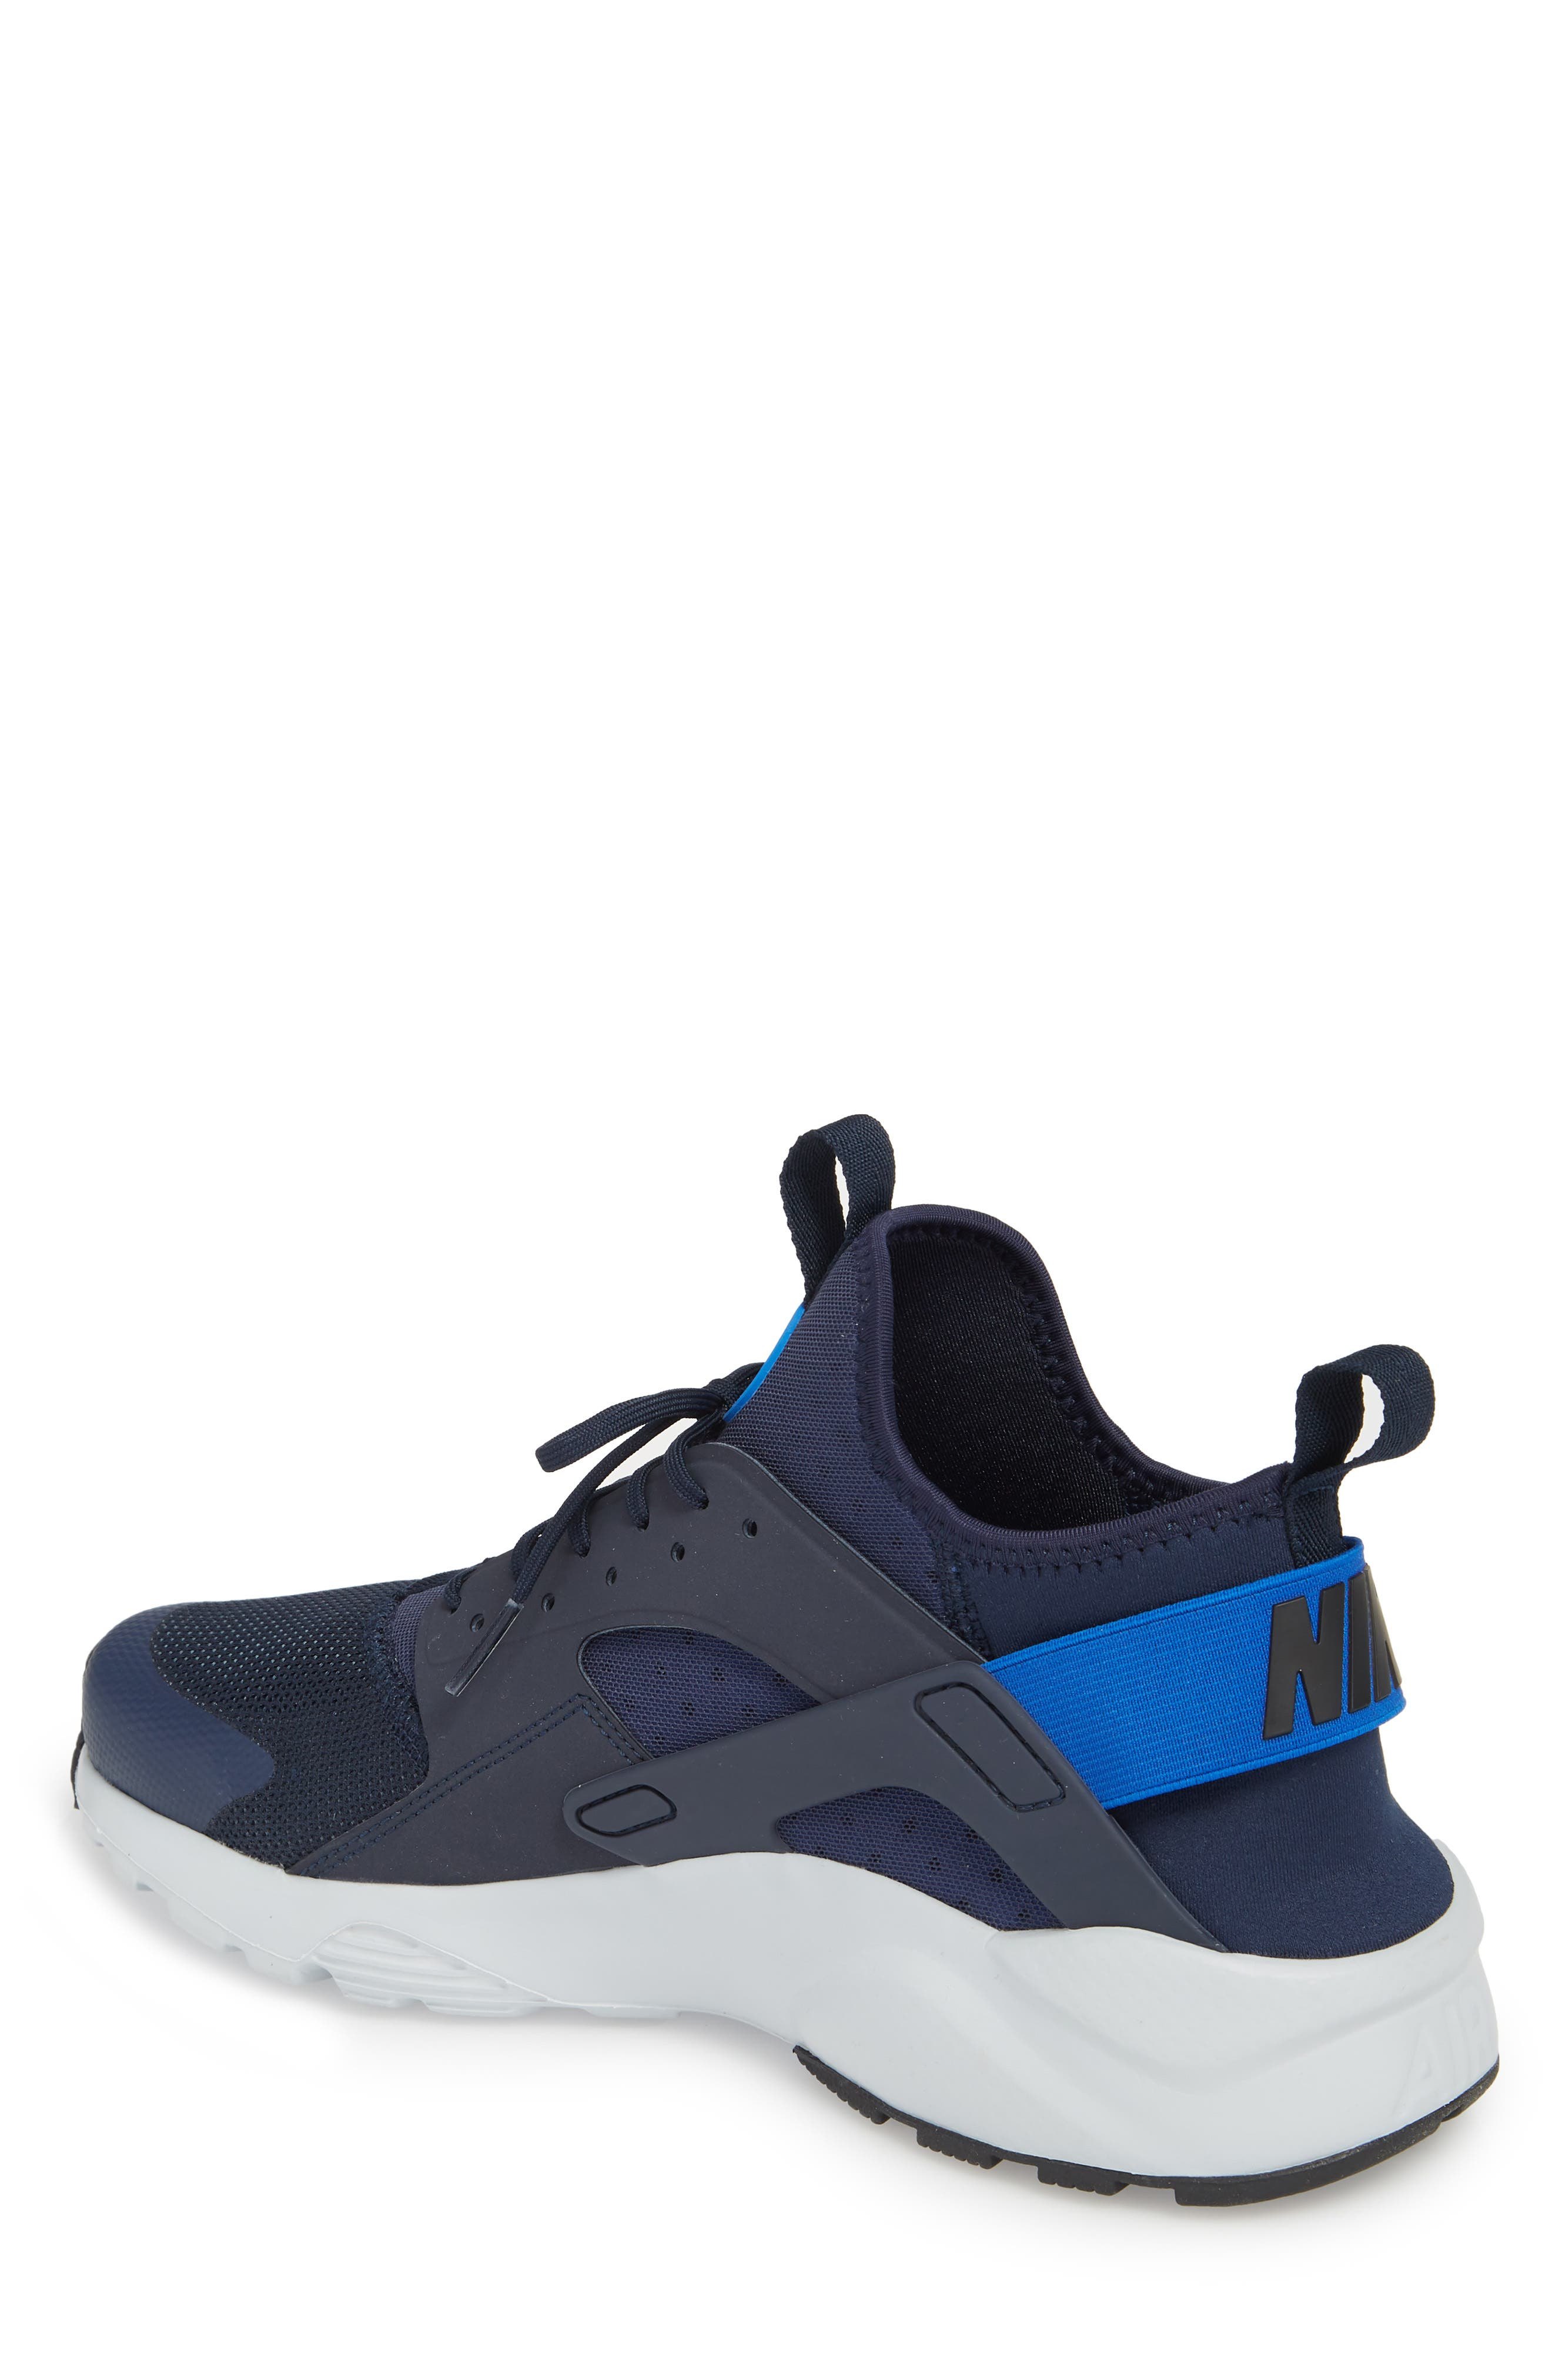 Air Huarache Run Ultra Sneaker,                             Alternate thumbnail 2, color,                             412